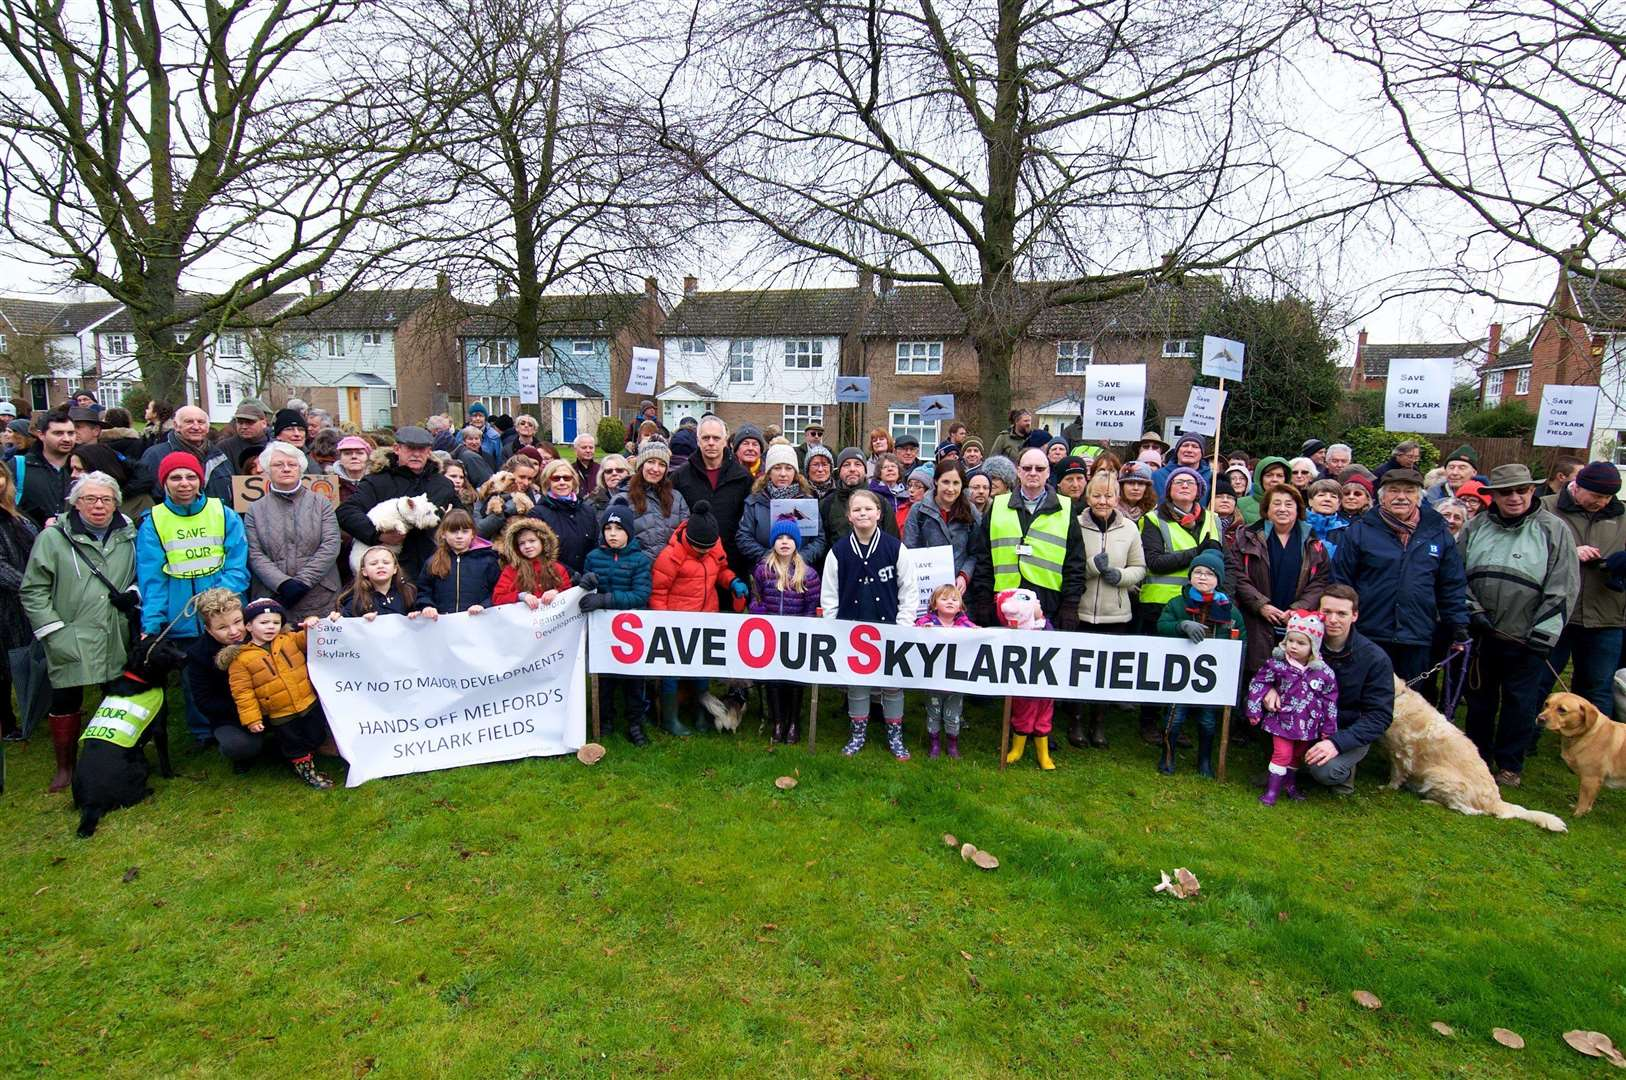 Long Melford, Suffolk. The Save Long Melford's Skylark Fields community action group is leading a walking tour of potential development sites in Long Melford, to highlight the issues of over-development...Picture: MARK BULLIMORE PHOTOGRAPHY. (3432195)